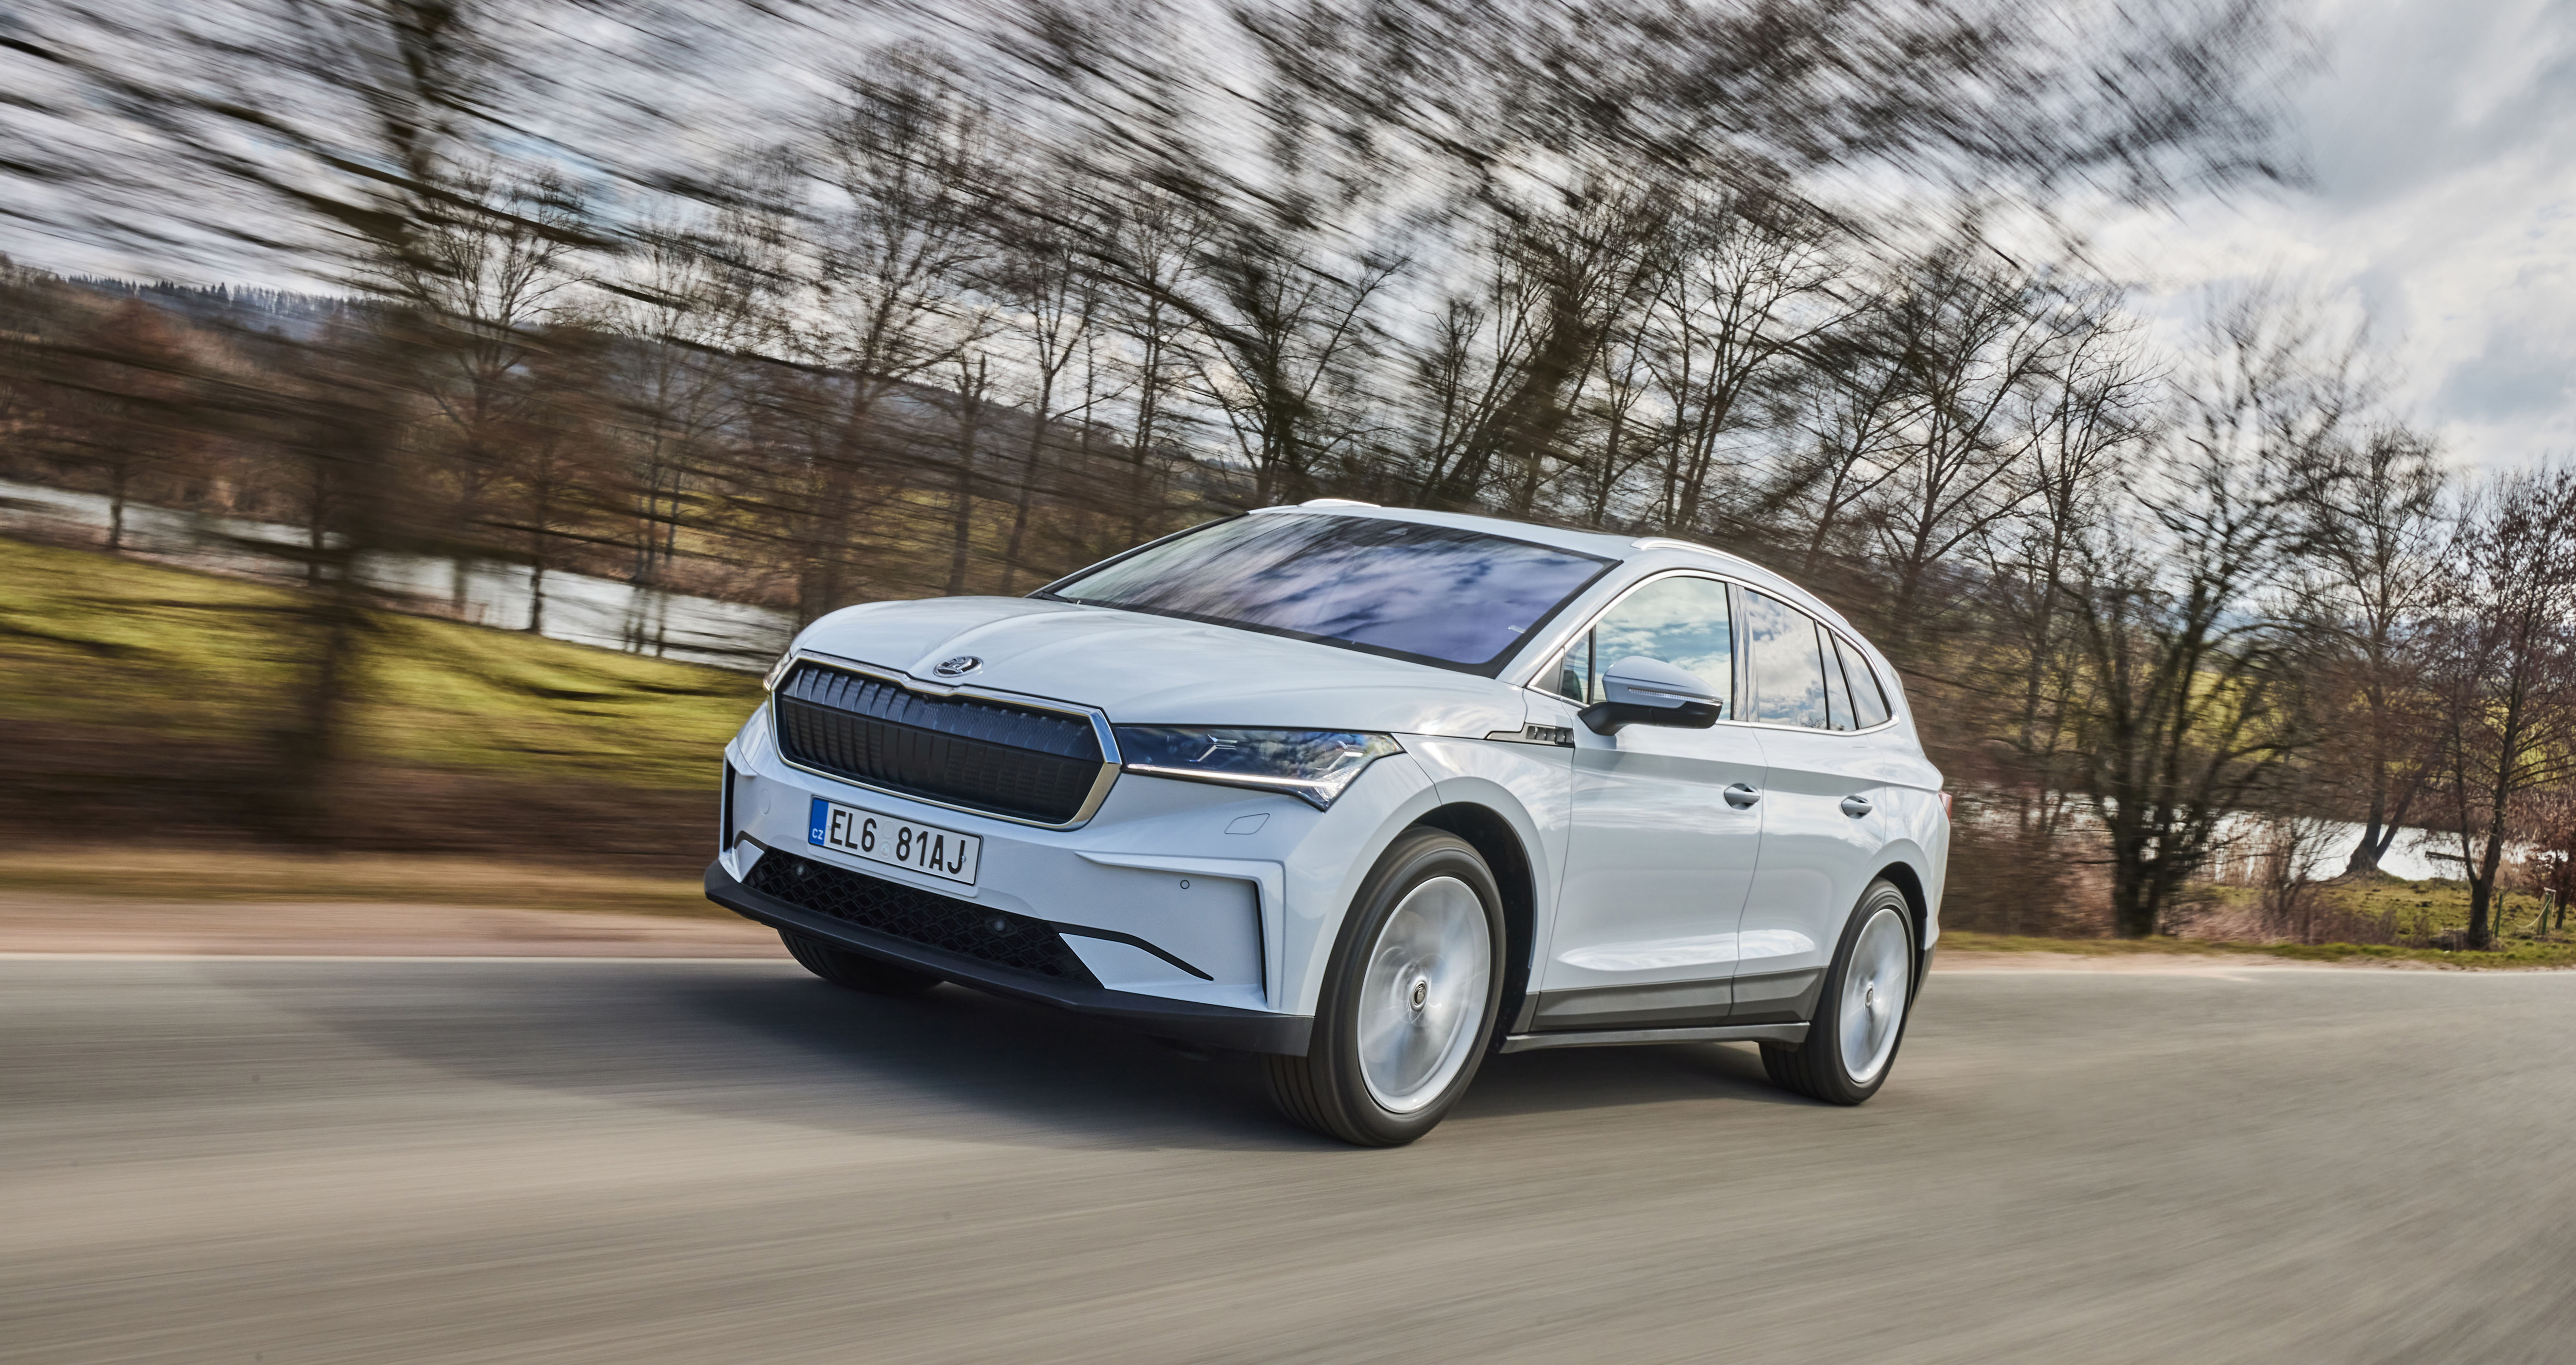 Maximum safety: SKODA electric vehicles just as safe as models with internal combustion engines - Image 1